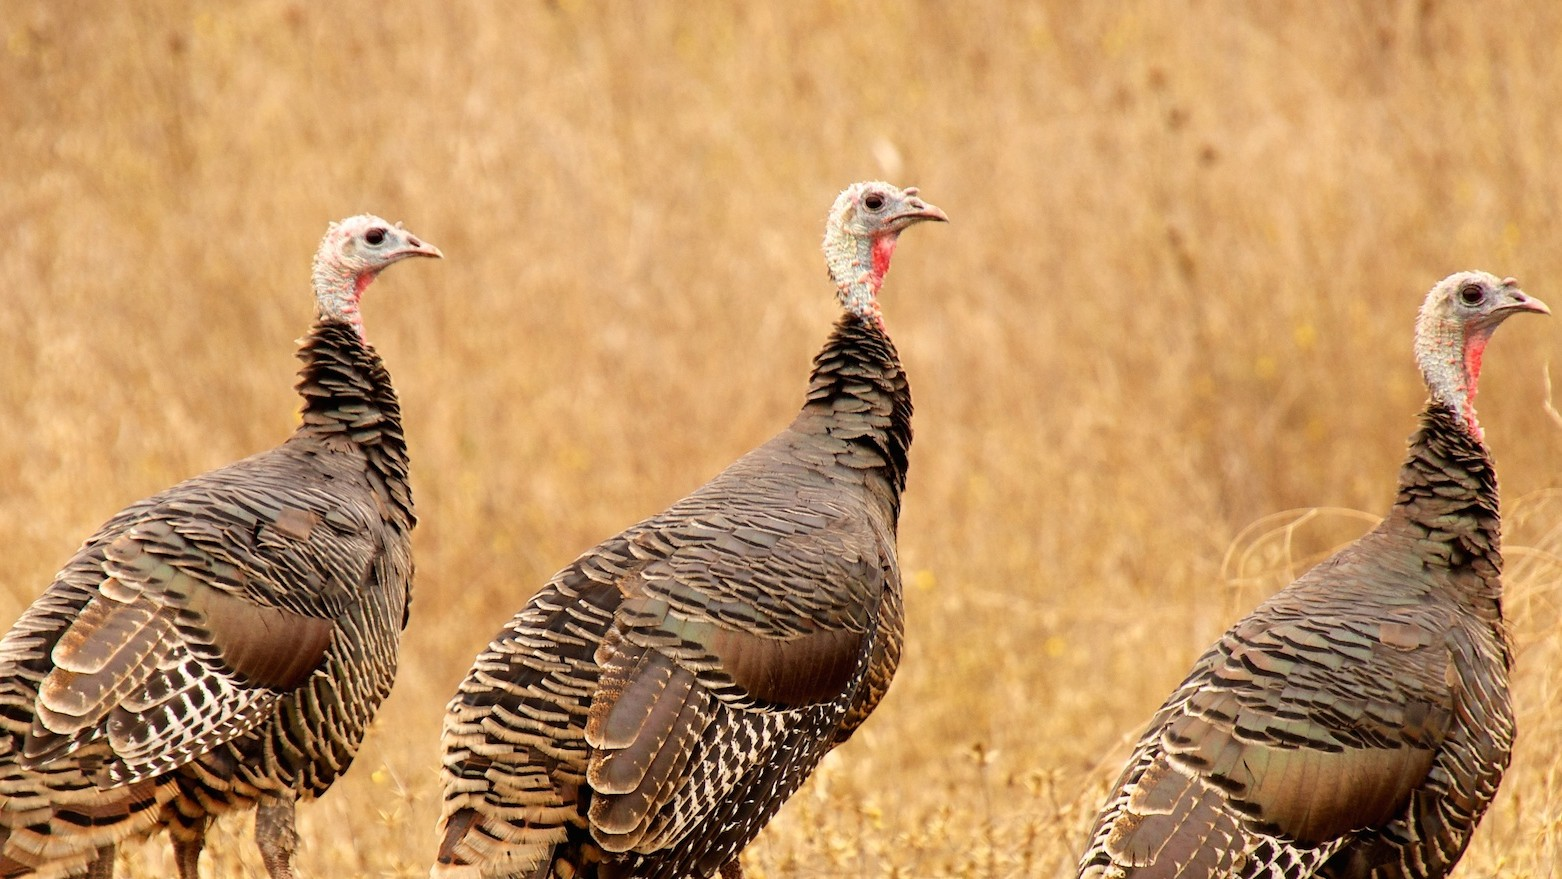 This Forgotten Turkey Bacteria Could Lead to the Super-Antibiotic of the Future